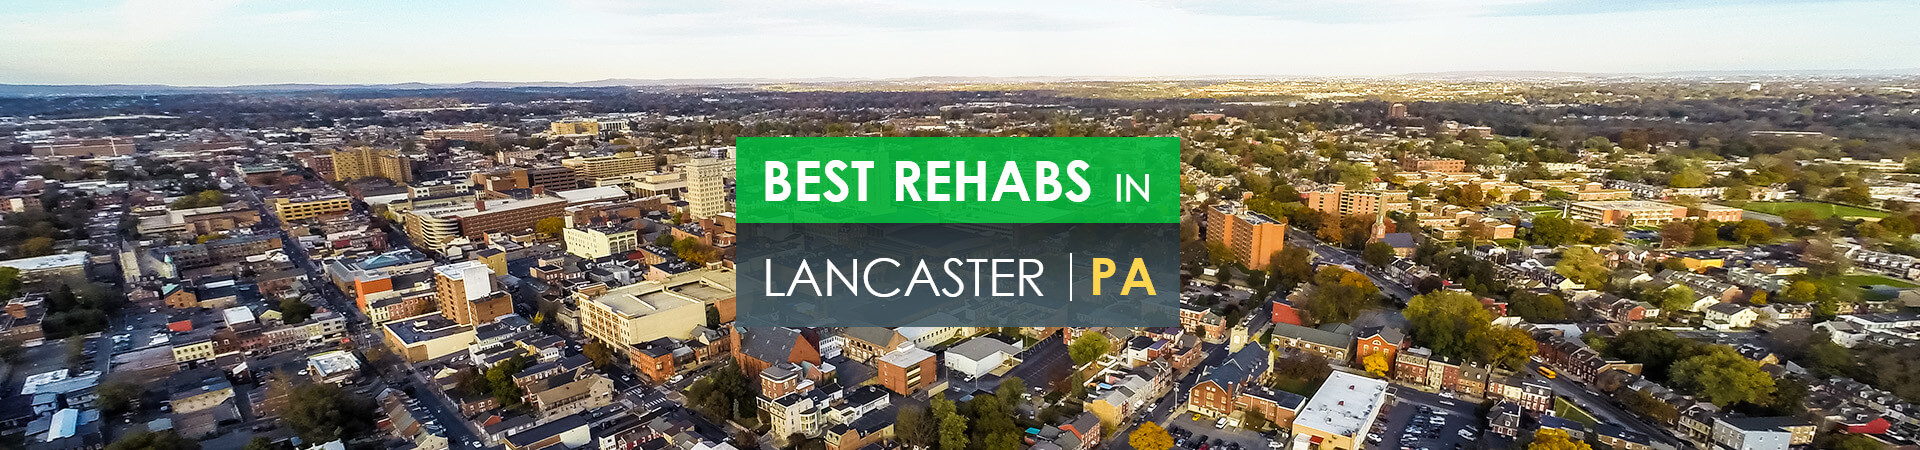 Best rehabs in Lancaster, PA